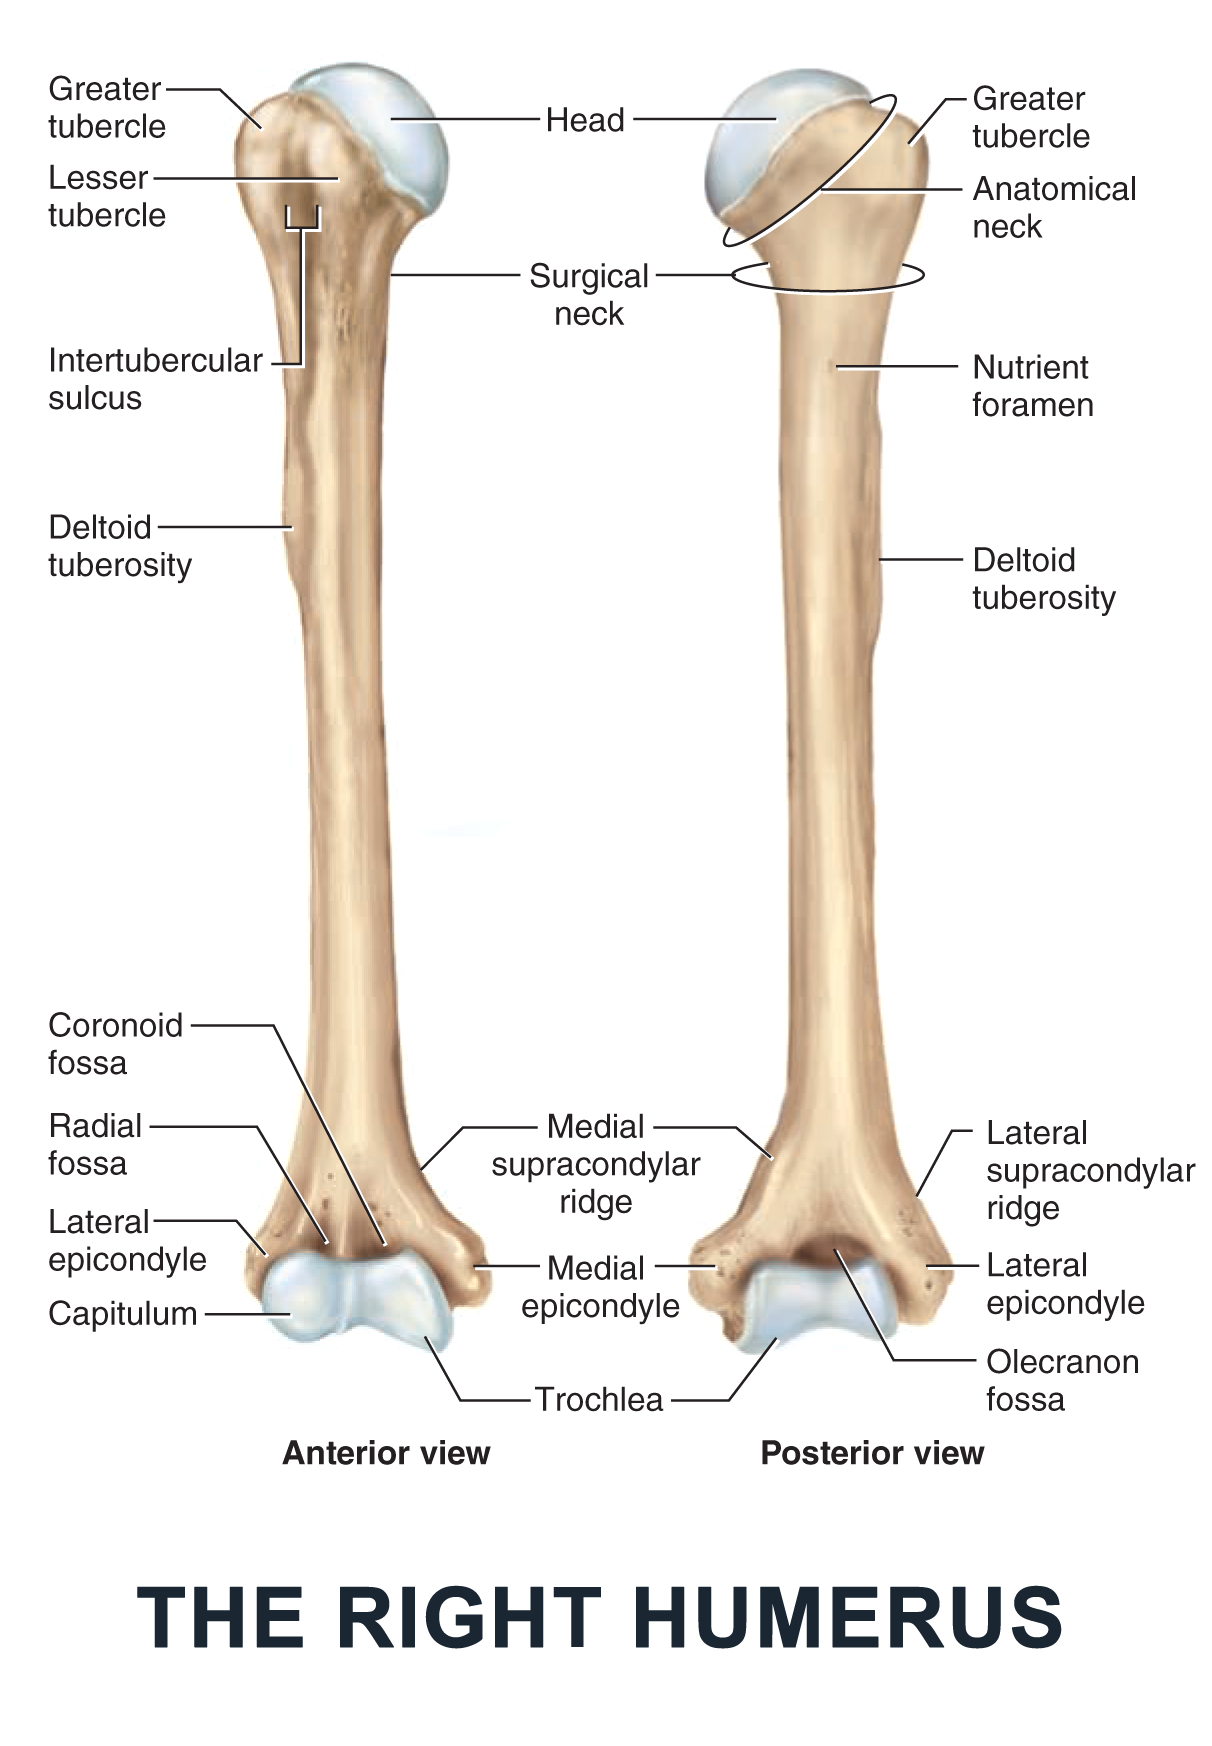 The Right Humerus